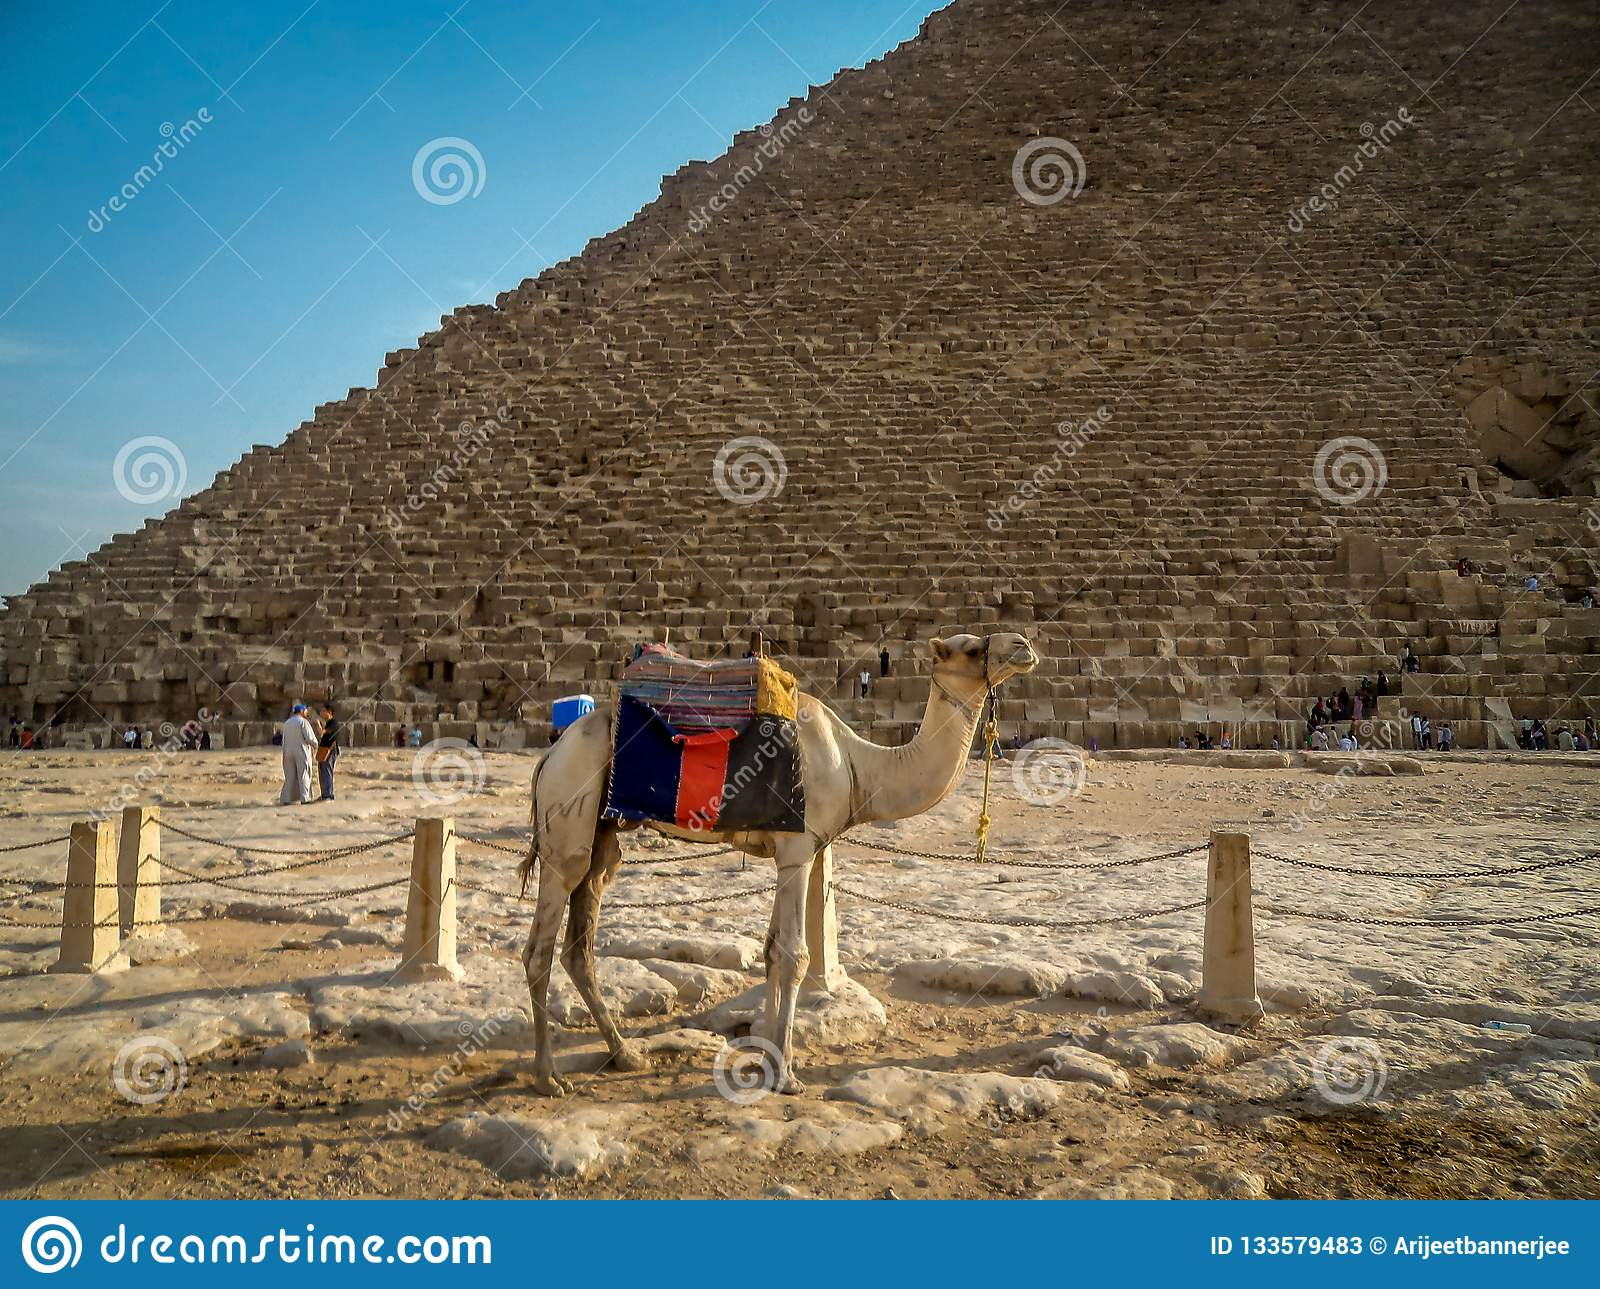 A Camel near the great pyramid of Giza in egypt